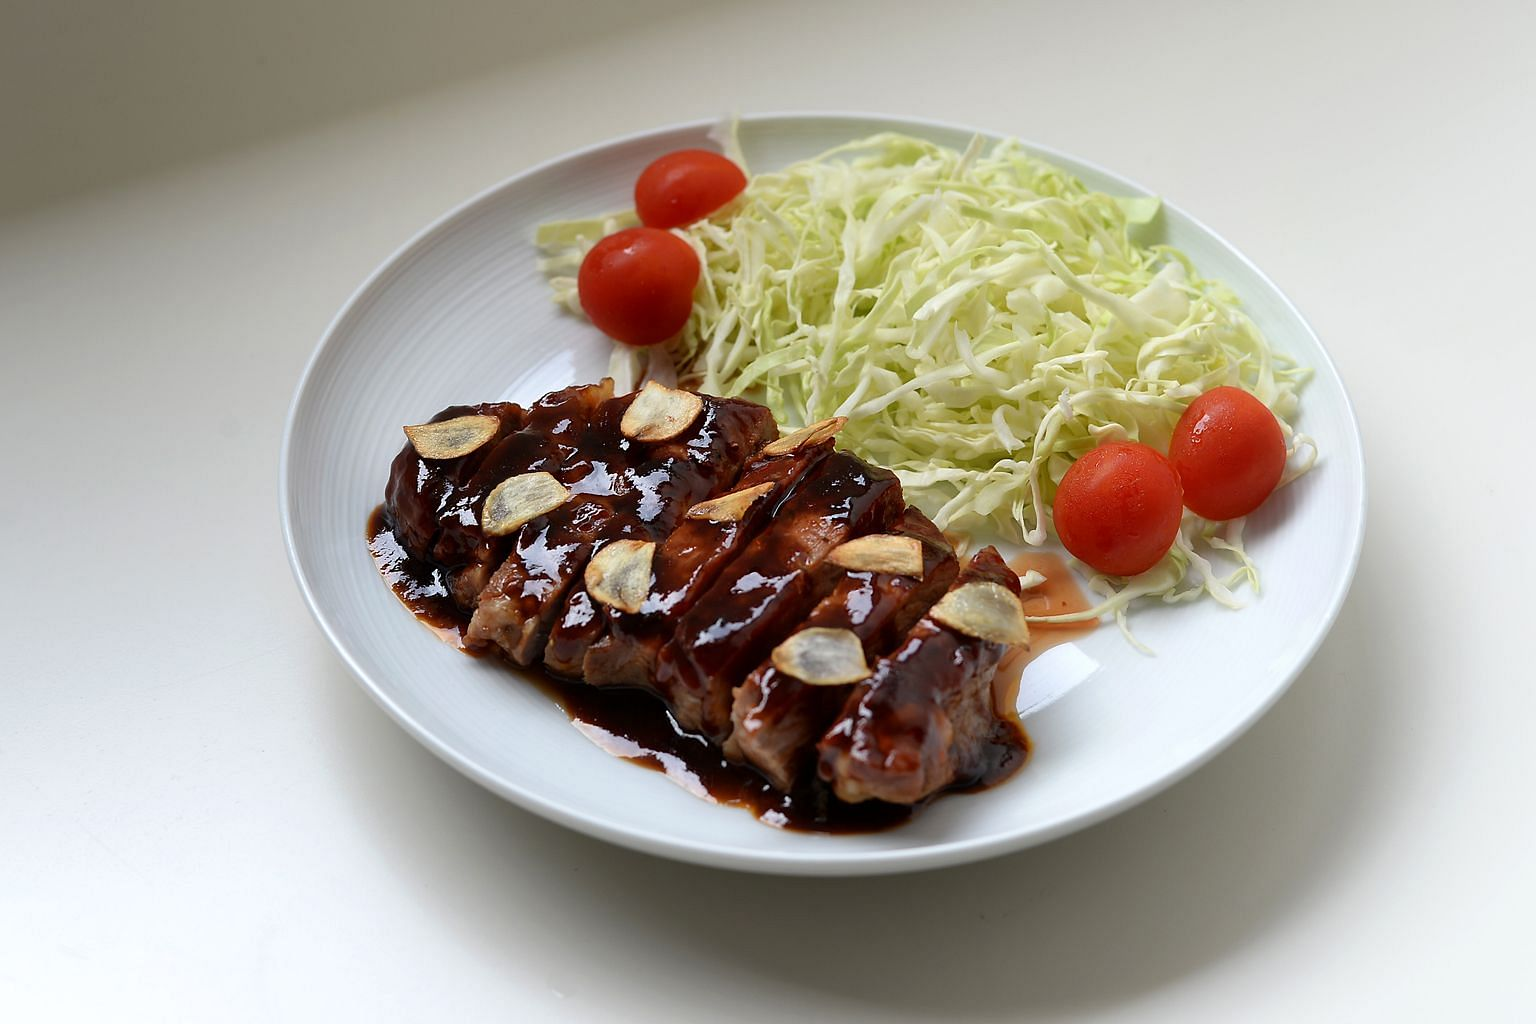 Tonteki, a pork steak that is the speciality of Yokkaichi, a city in Mie prefecture, is one of the dishes featured in Midnight Diner: Tokyo Stories.